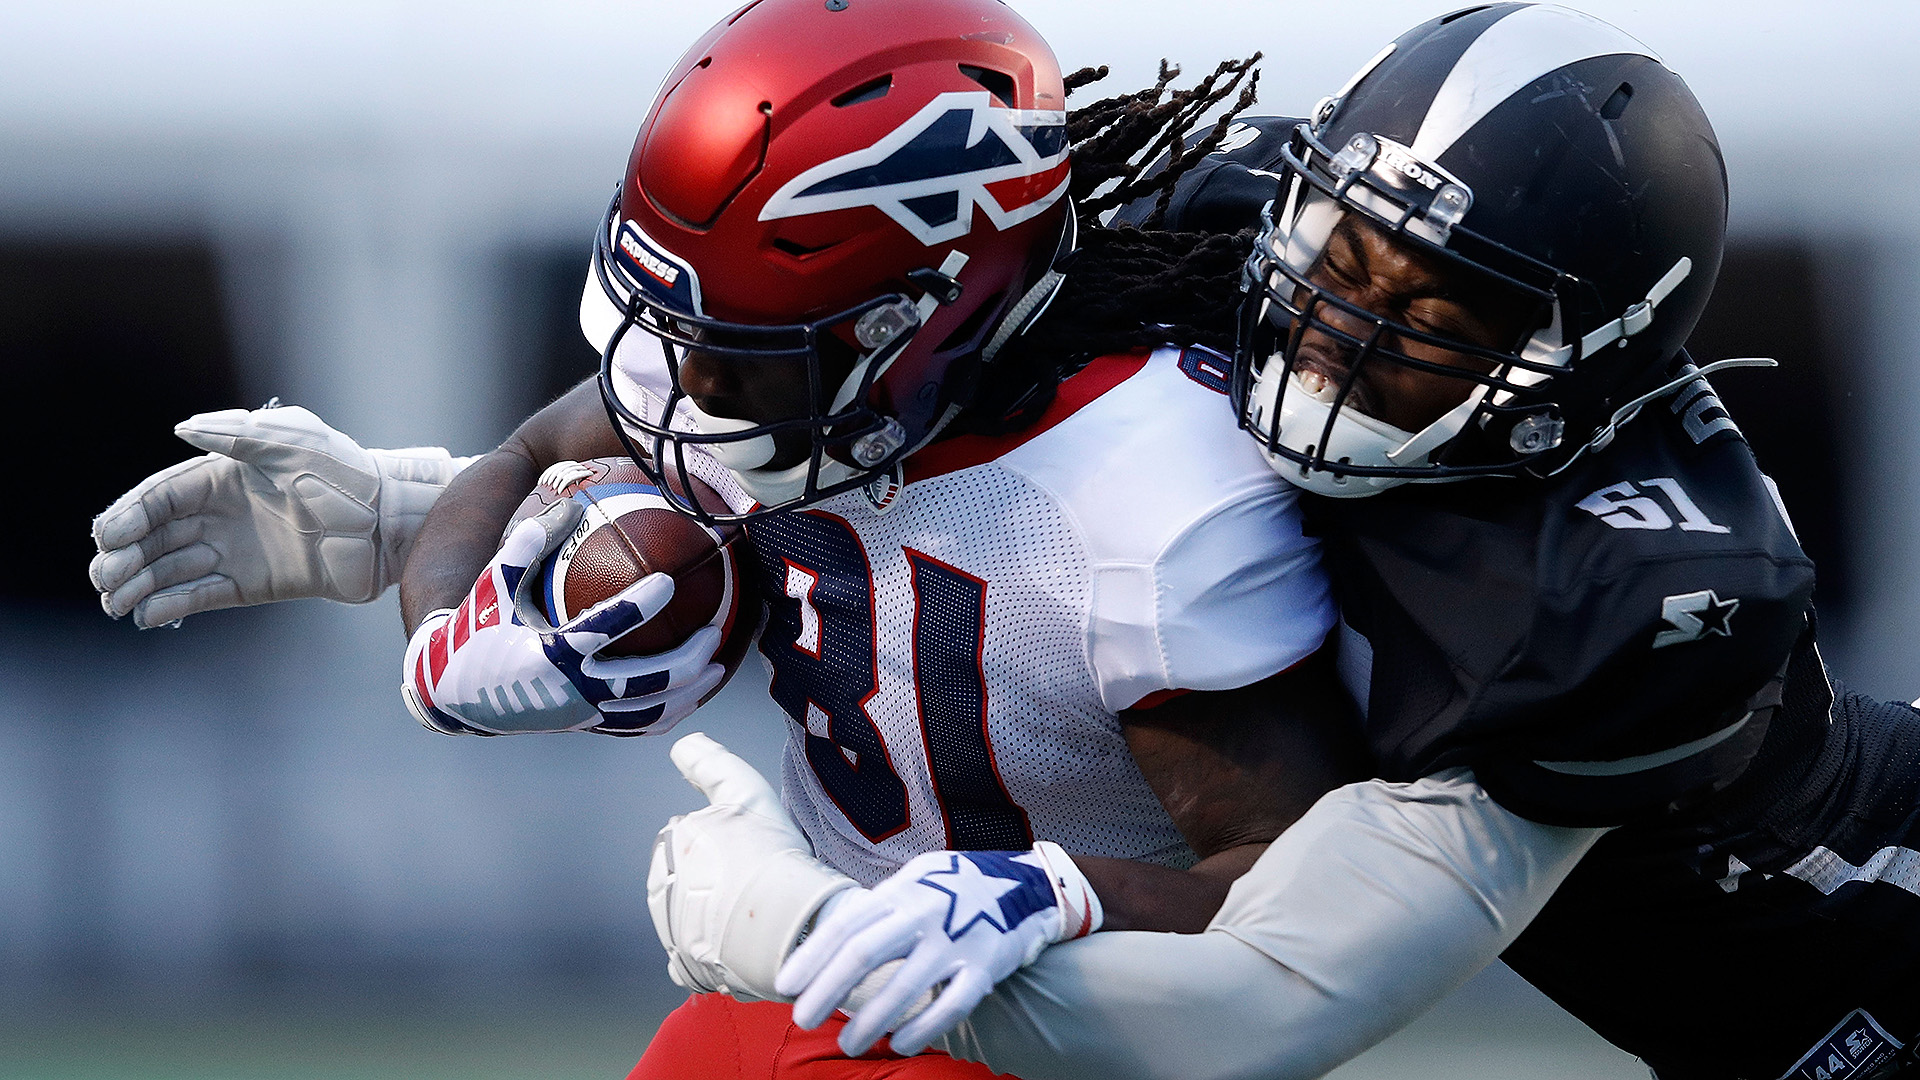 Birmingham Iron gives Alabama football fans reason to be excited ...